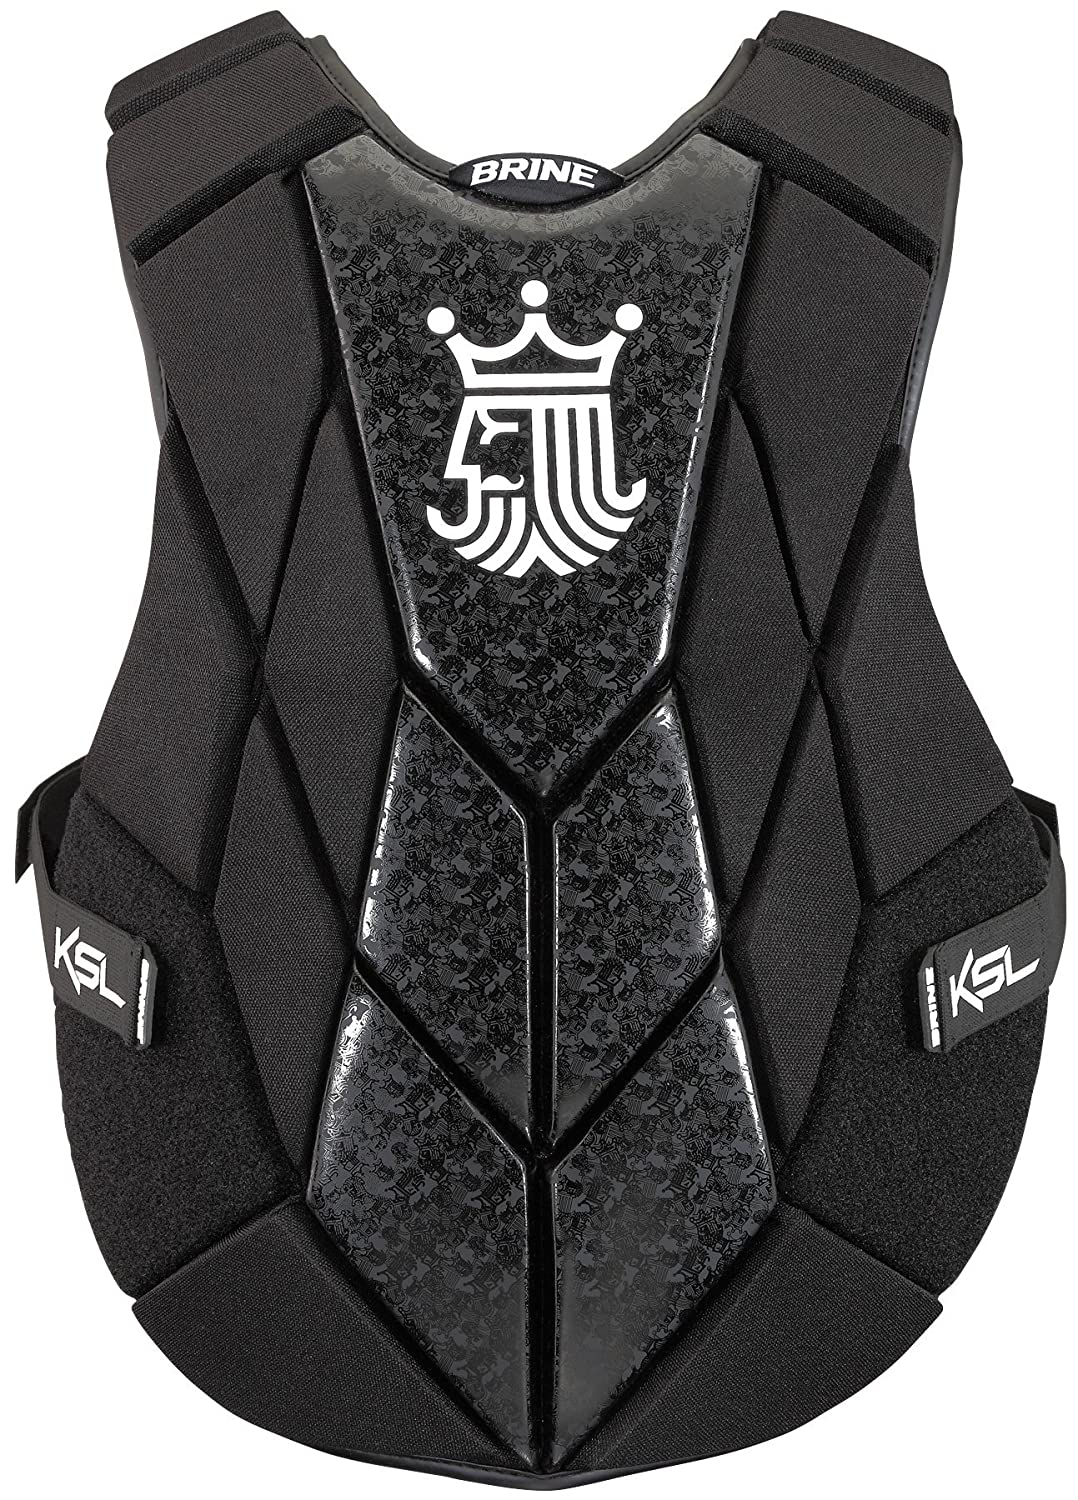 WARRIOR Rabil Arm Pad Large Brine-Warrior Lacrosse PRAP16